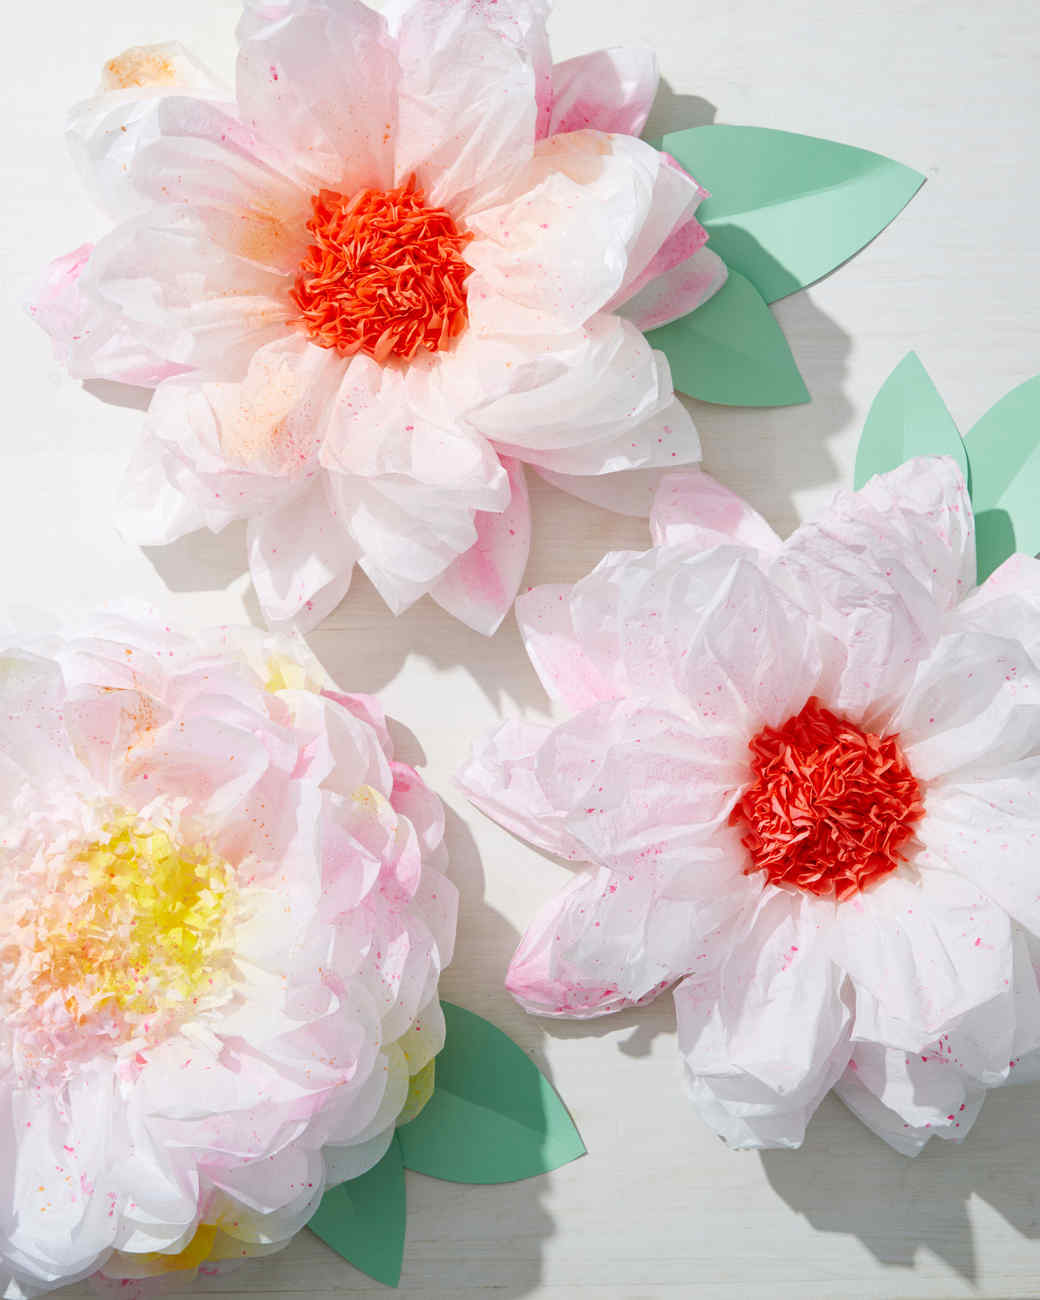 Tissue Paper Flower Making Kit Trisaorddiner